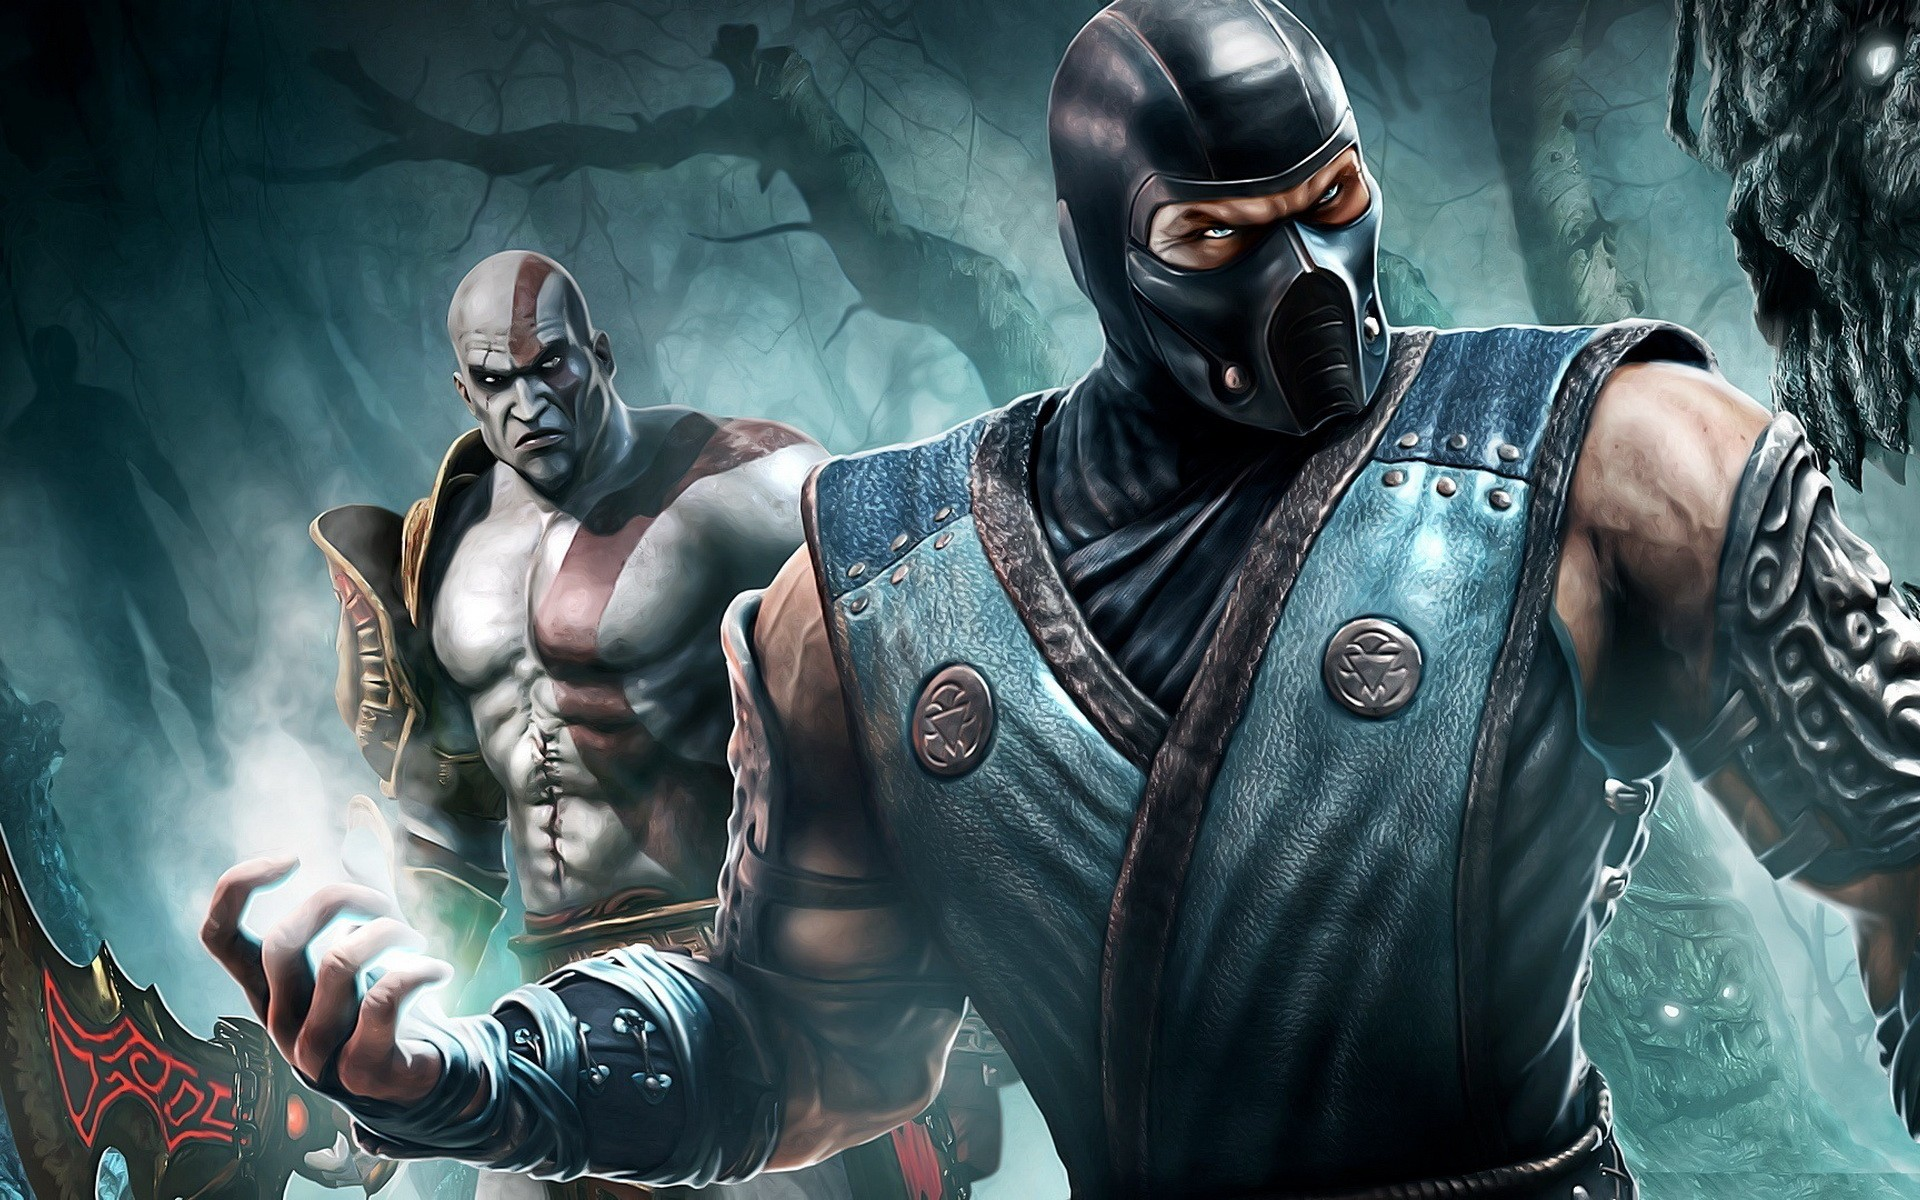 Video Games Wallpaper 1920x1200 Video Games Mortal Kombat Games 1920x1200